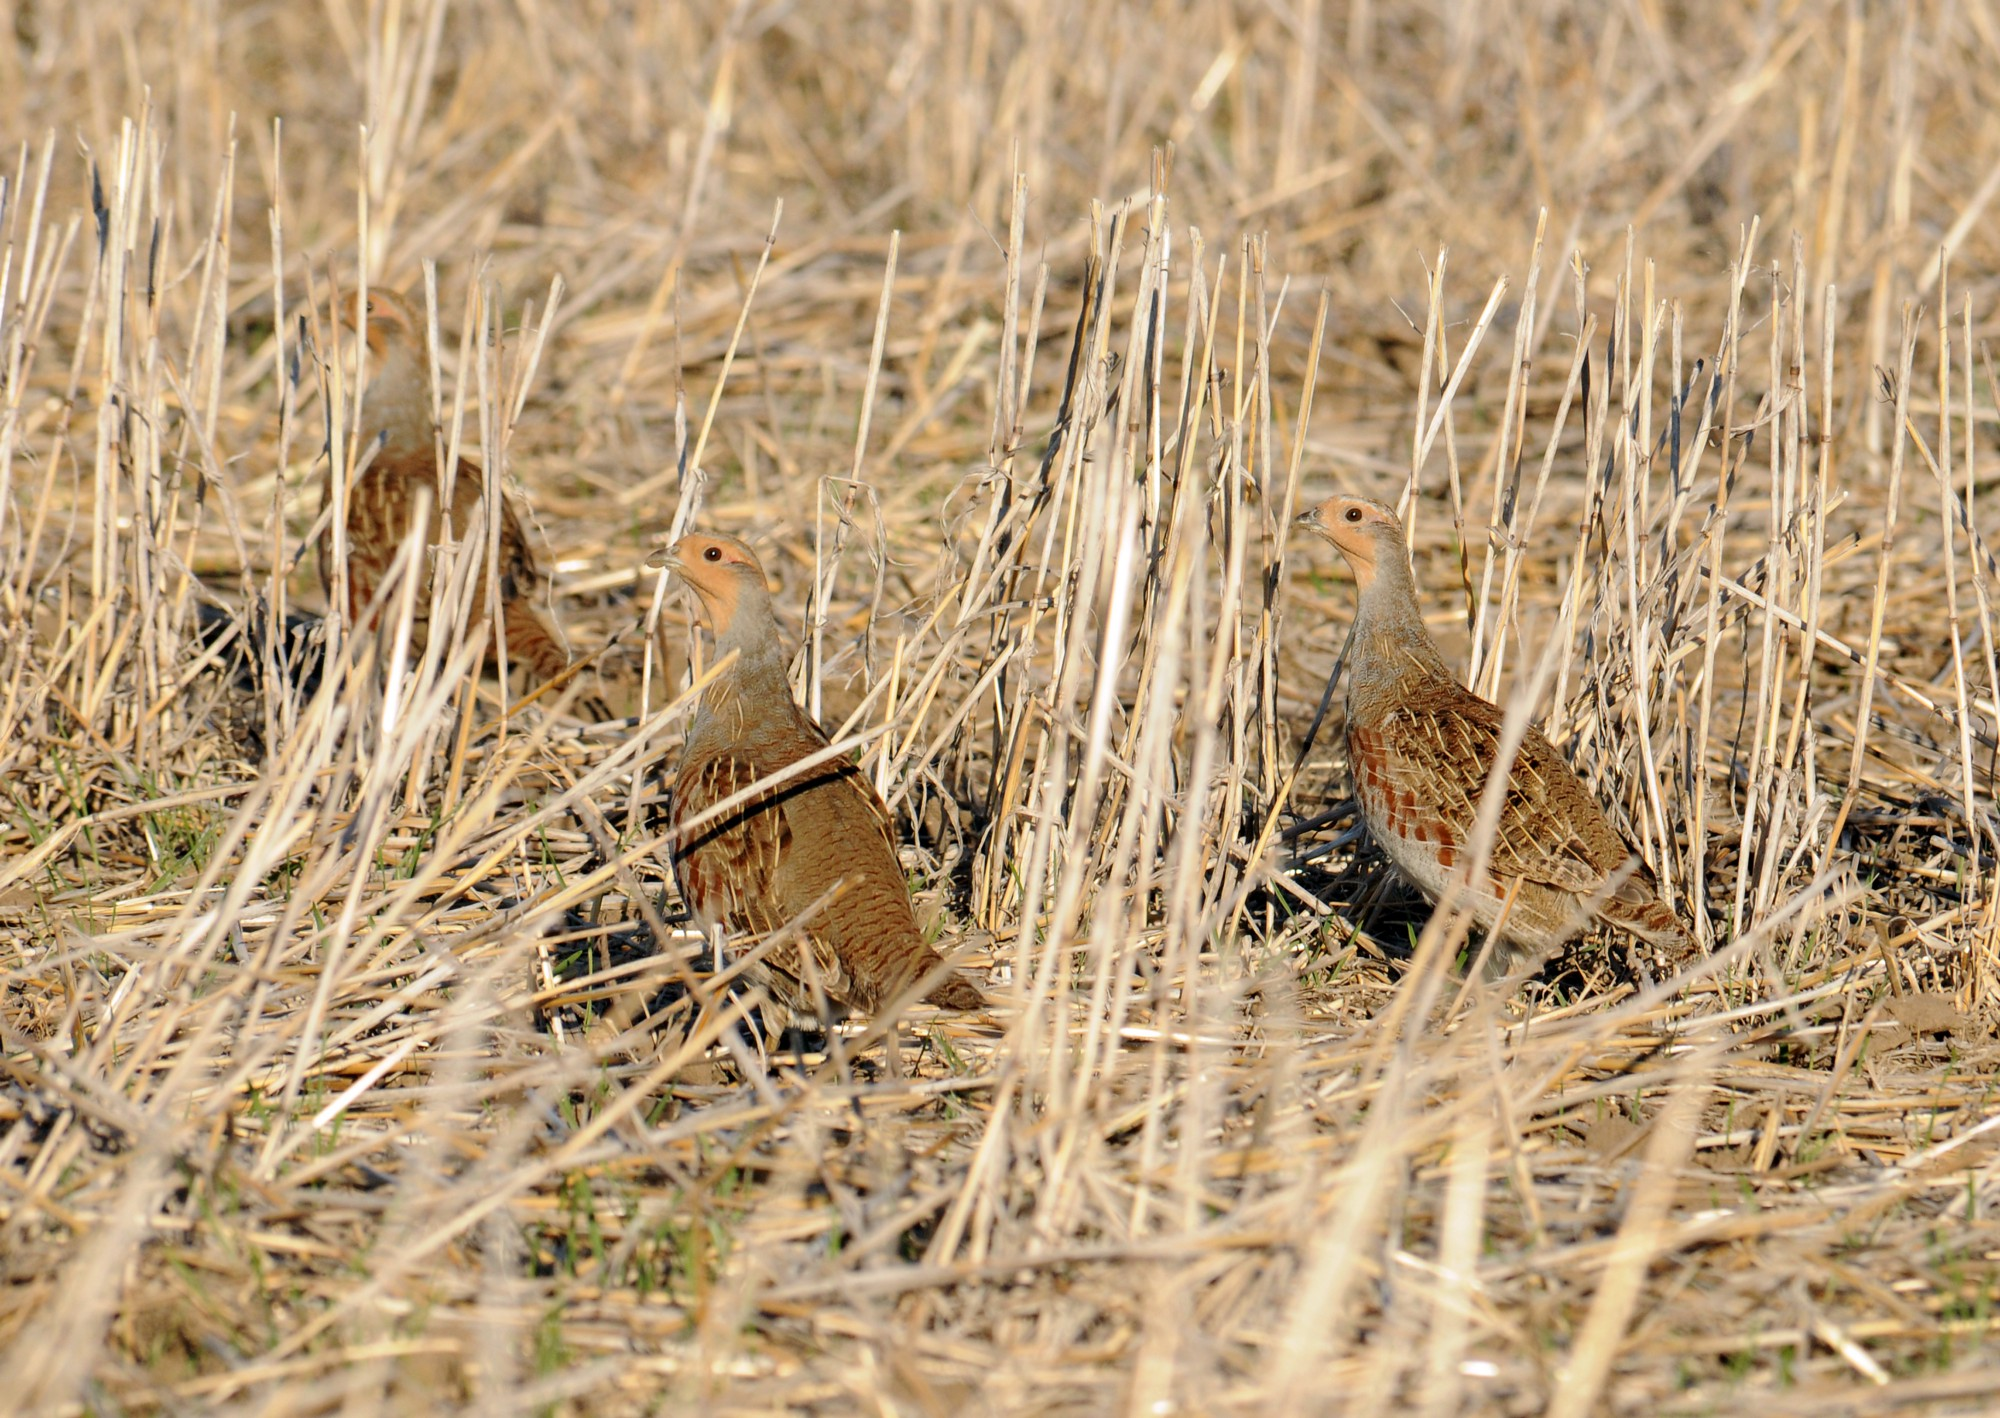 Three gray partridge look around warily in a farm field.